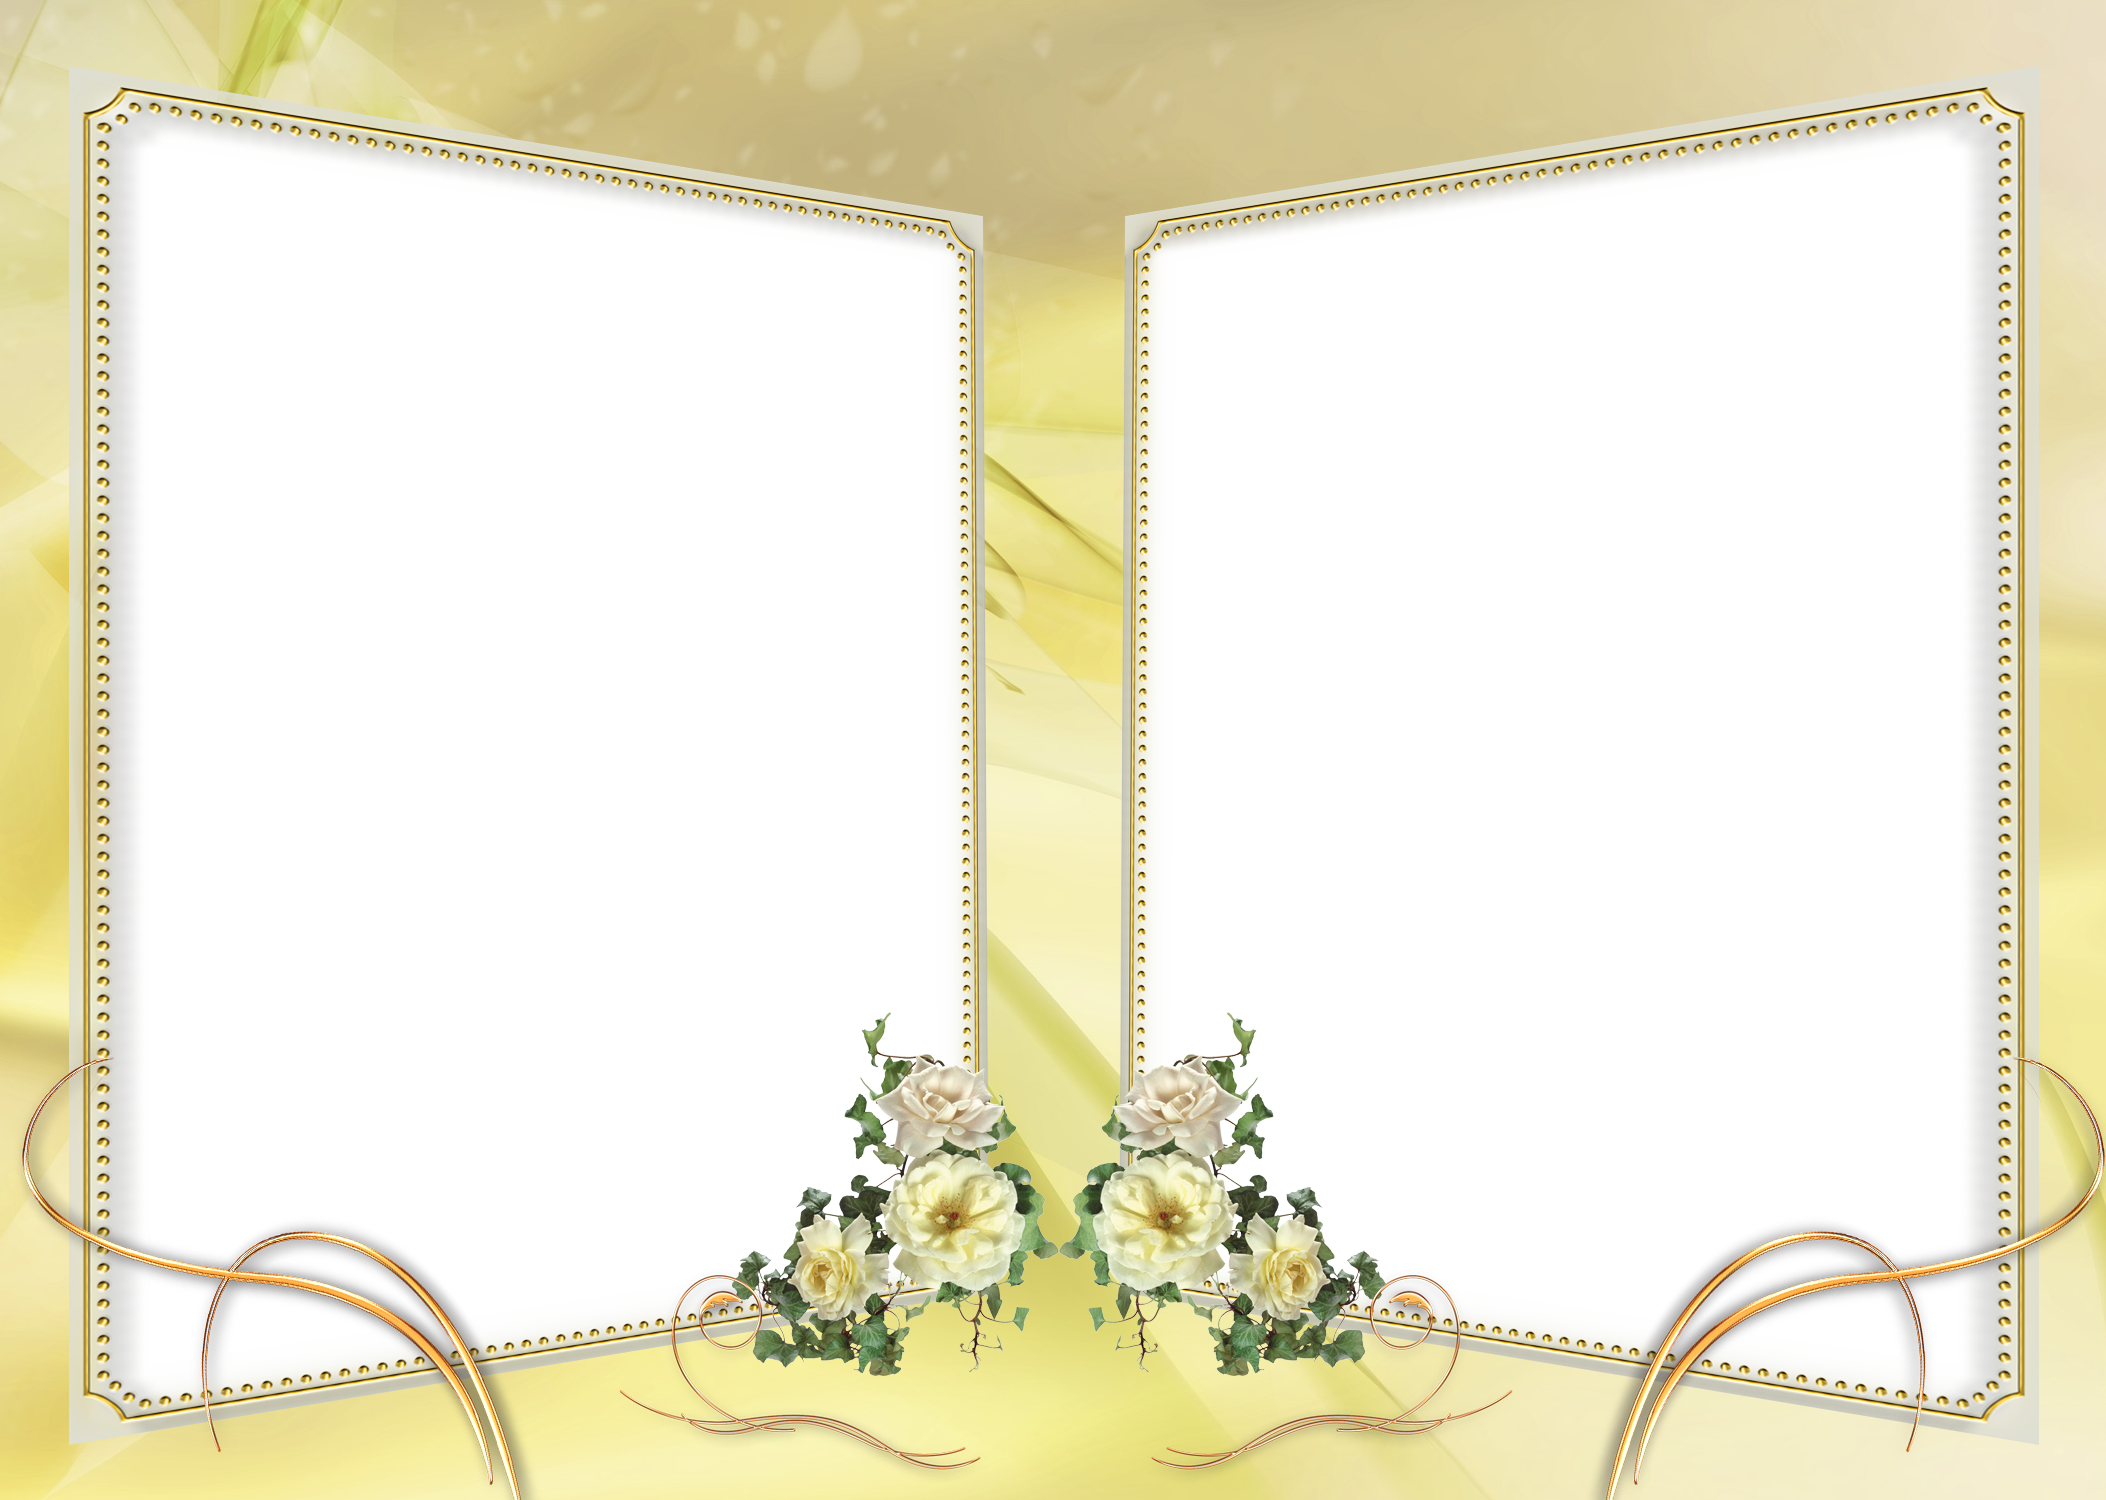 wedding photo frame png image 24588